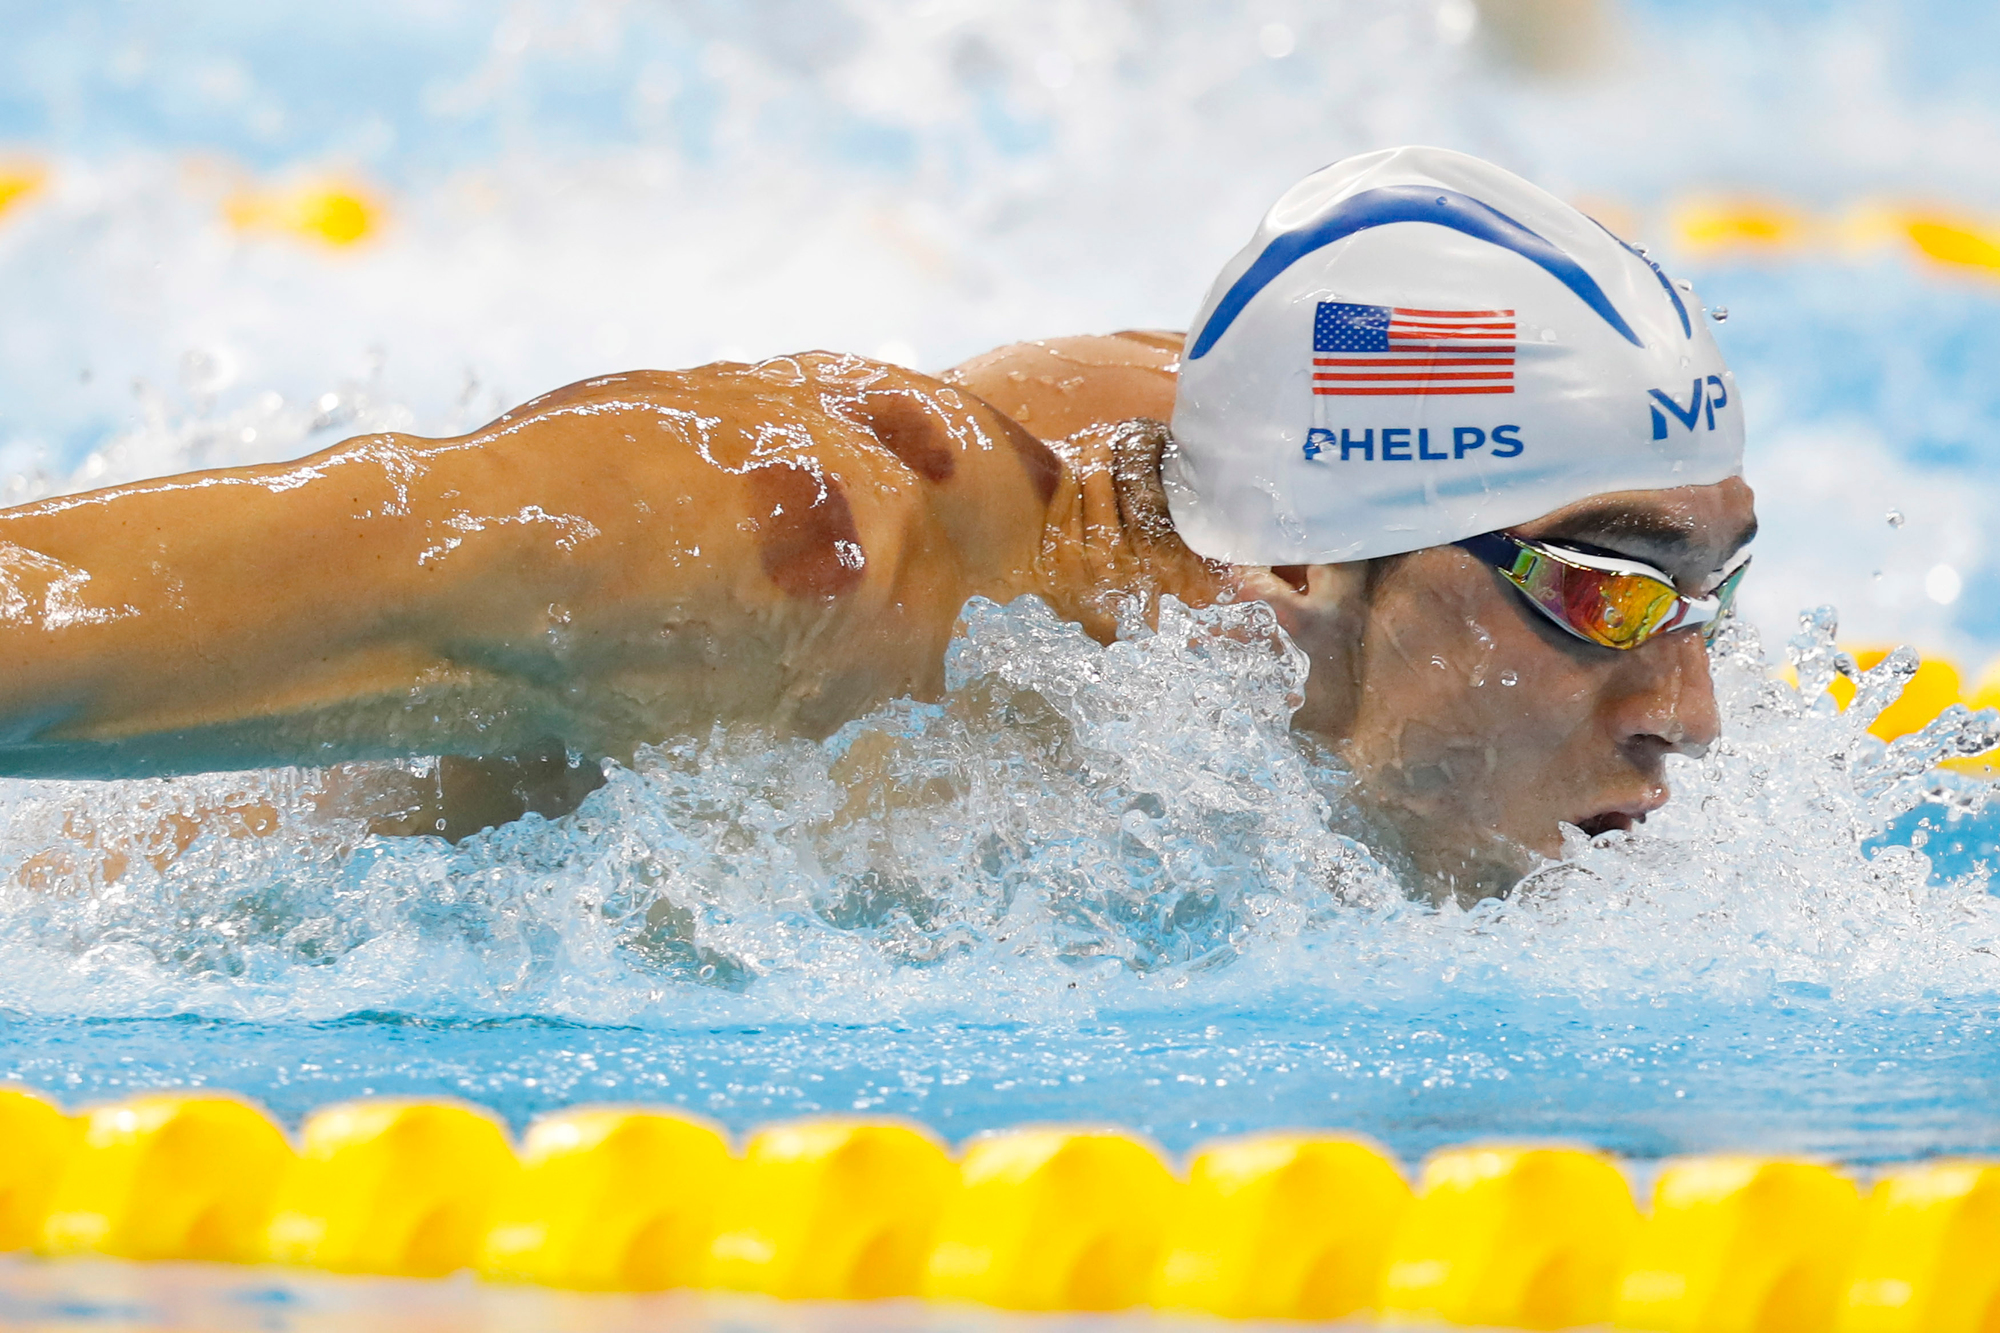 America's Michael Phelps competes in the third Men's 200M Butterfly heat at the Olympic Aquatics Stadium at the 2016 Rio Summer Olympics in Rio de Janeiro, Brazil, on August 8, 2016. Phelps finished third with a time of 1:55.73.